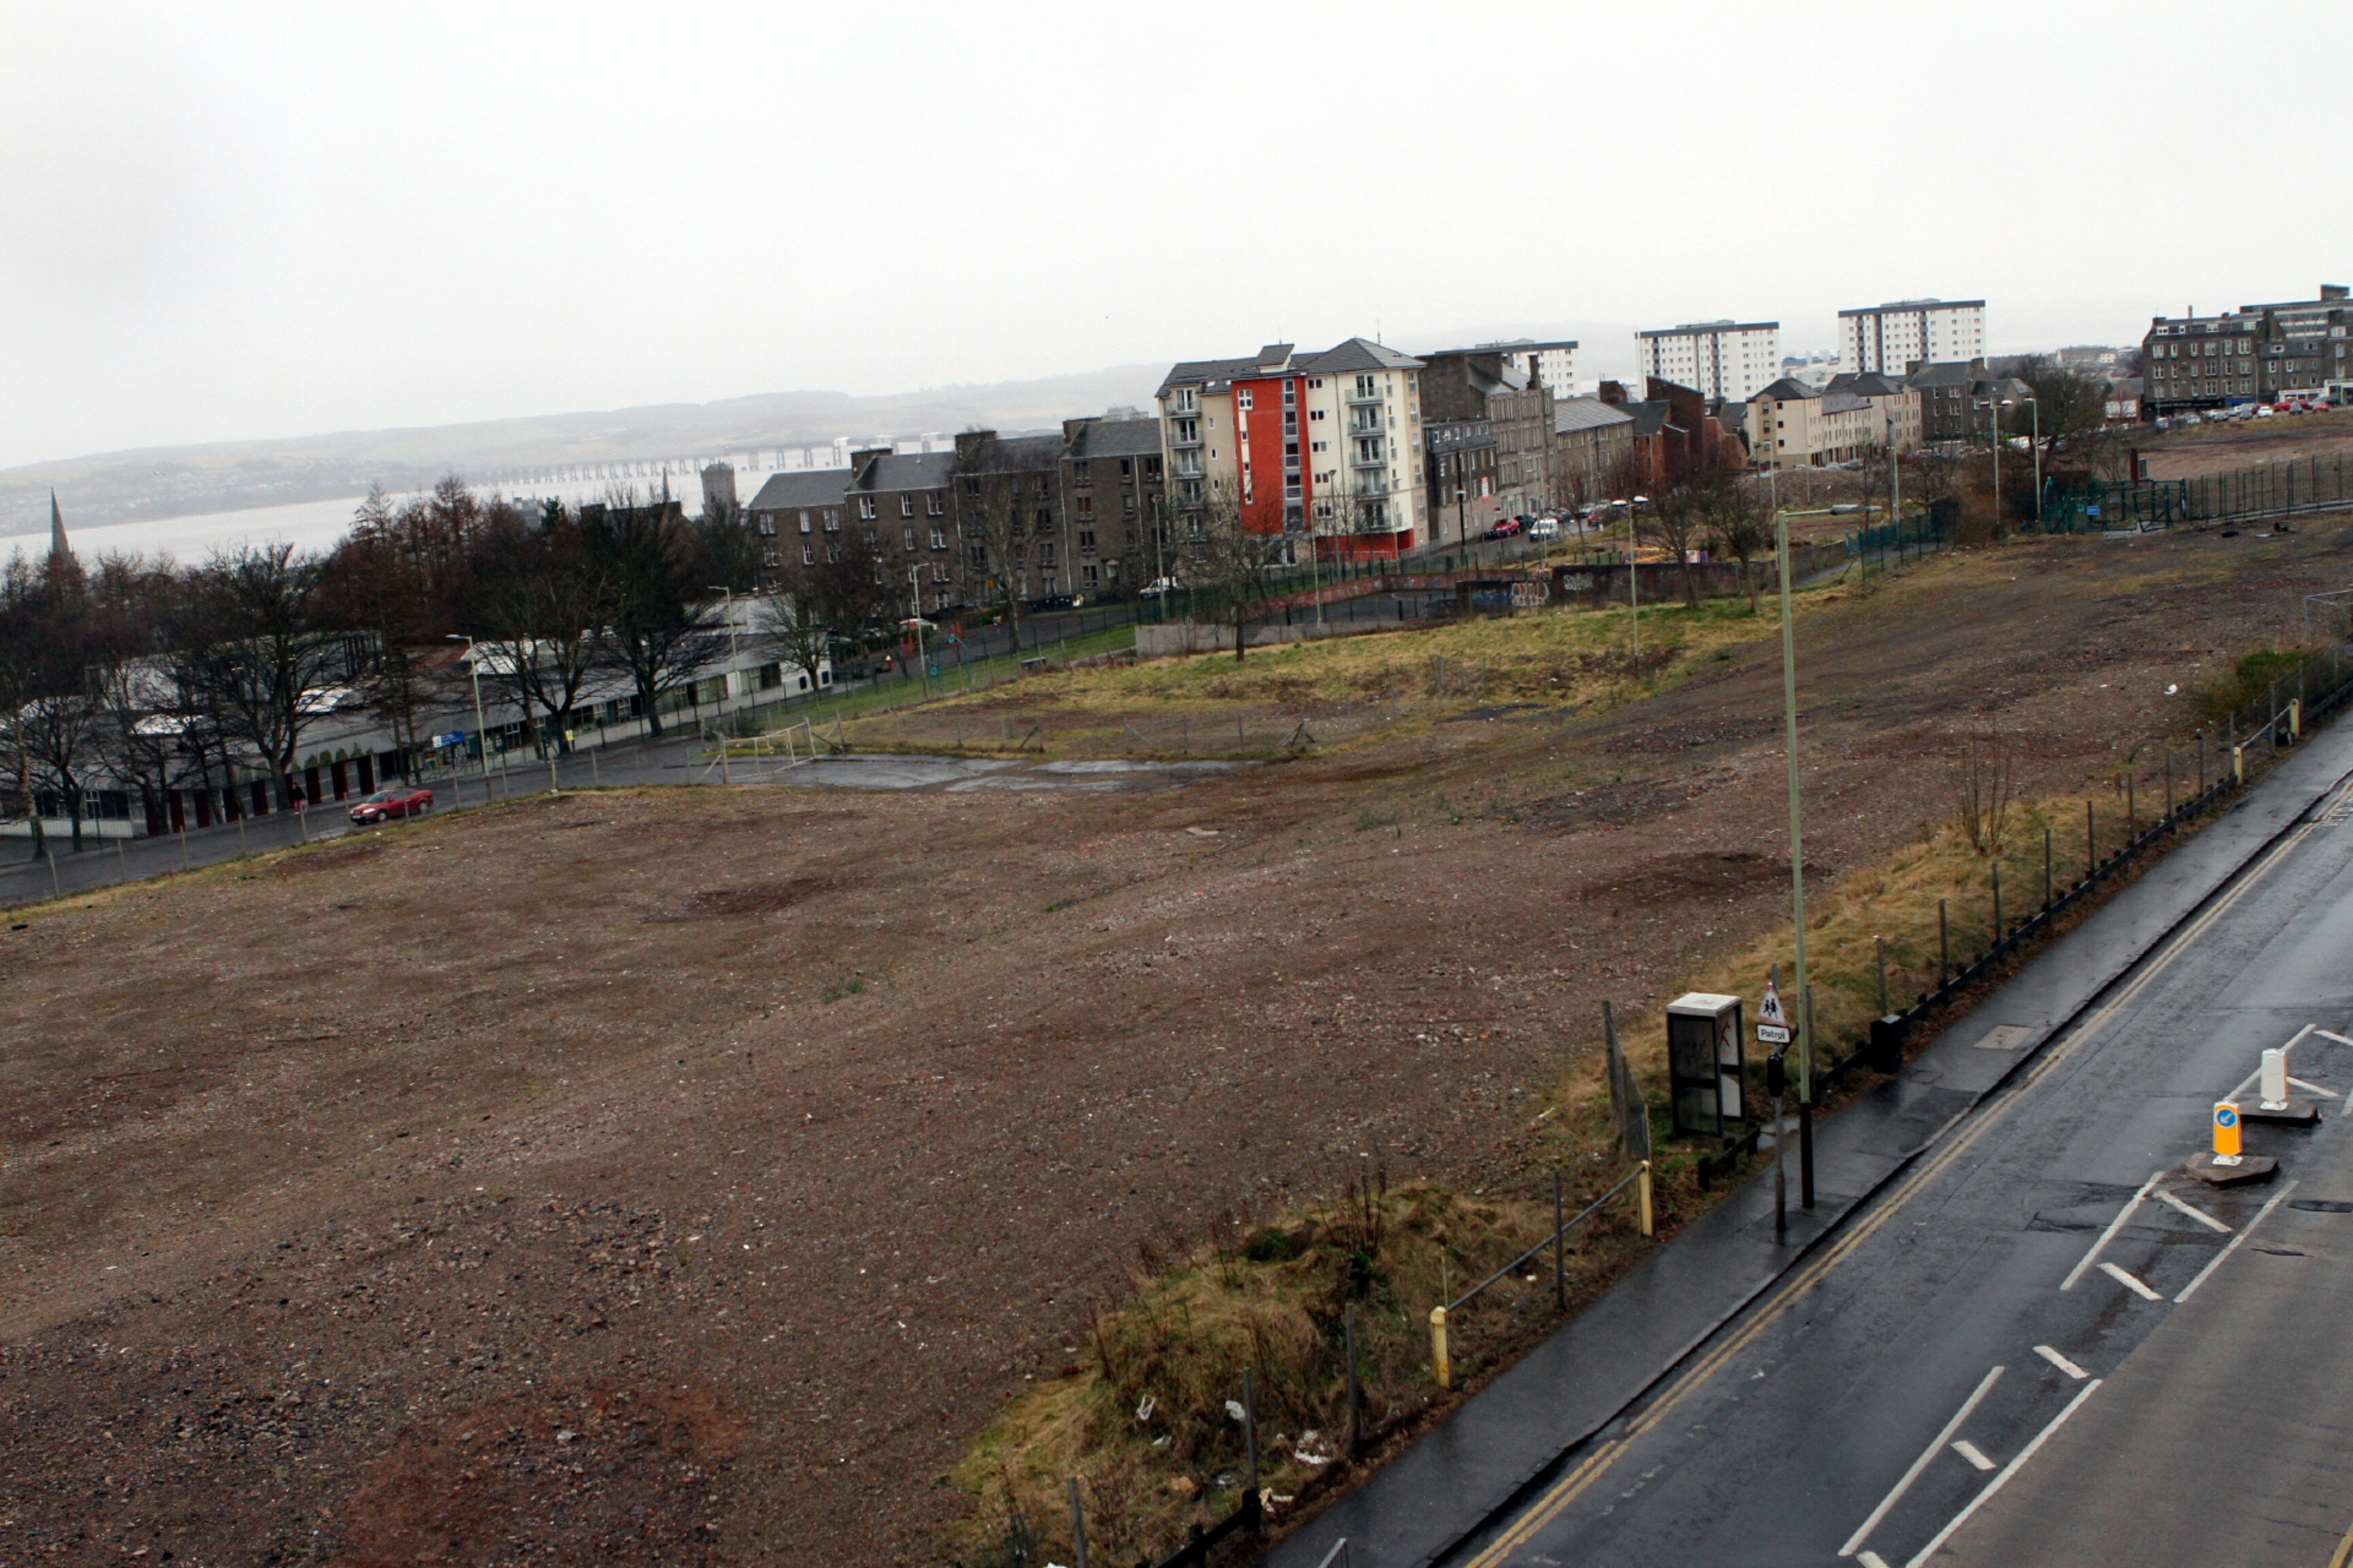 The Alexander Street site where the multis once stood. Inset: how the new housing development will look.